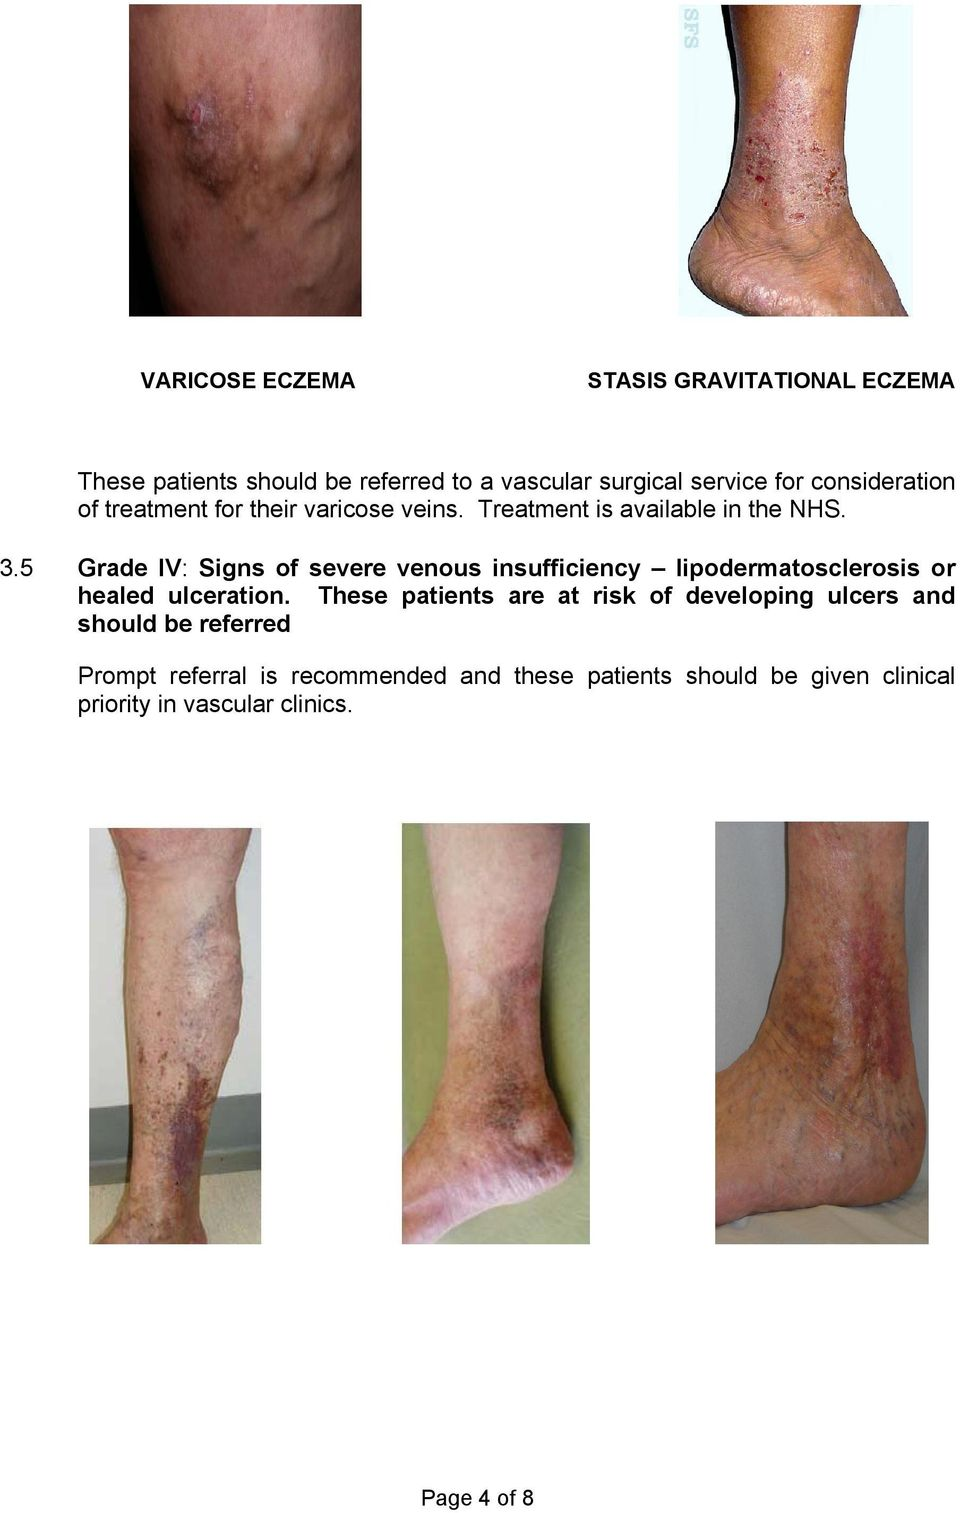 5 Grade IV: Signs of severe venous insufficiency lipodermatosclerosis or healed ulceration.